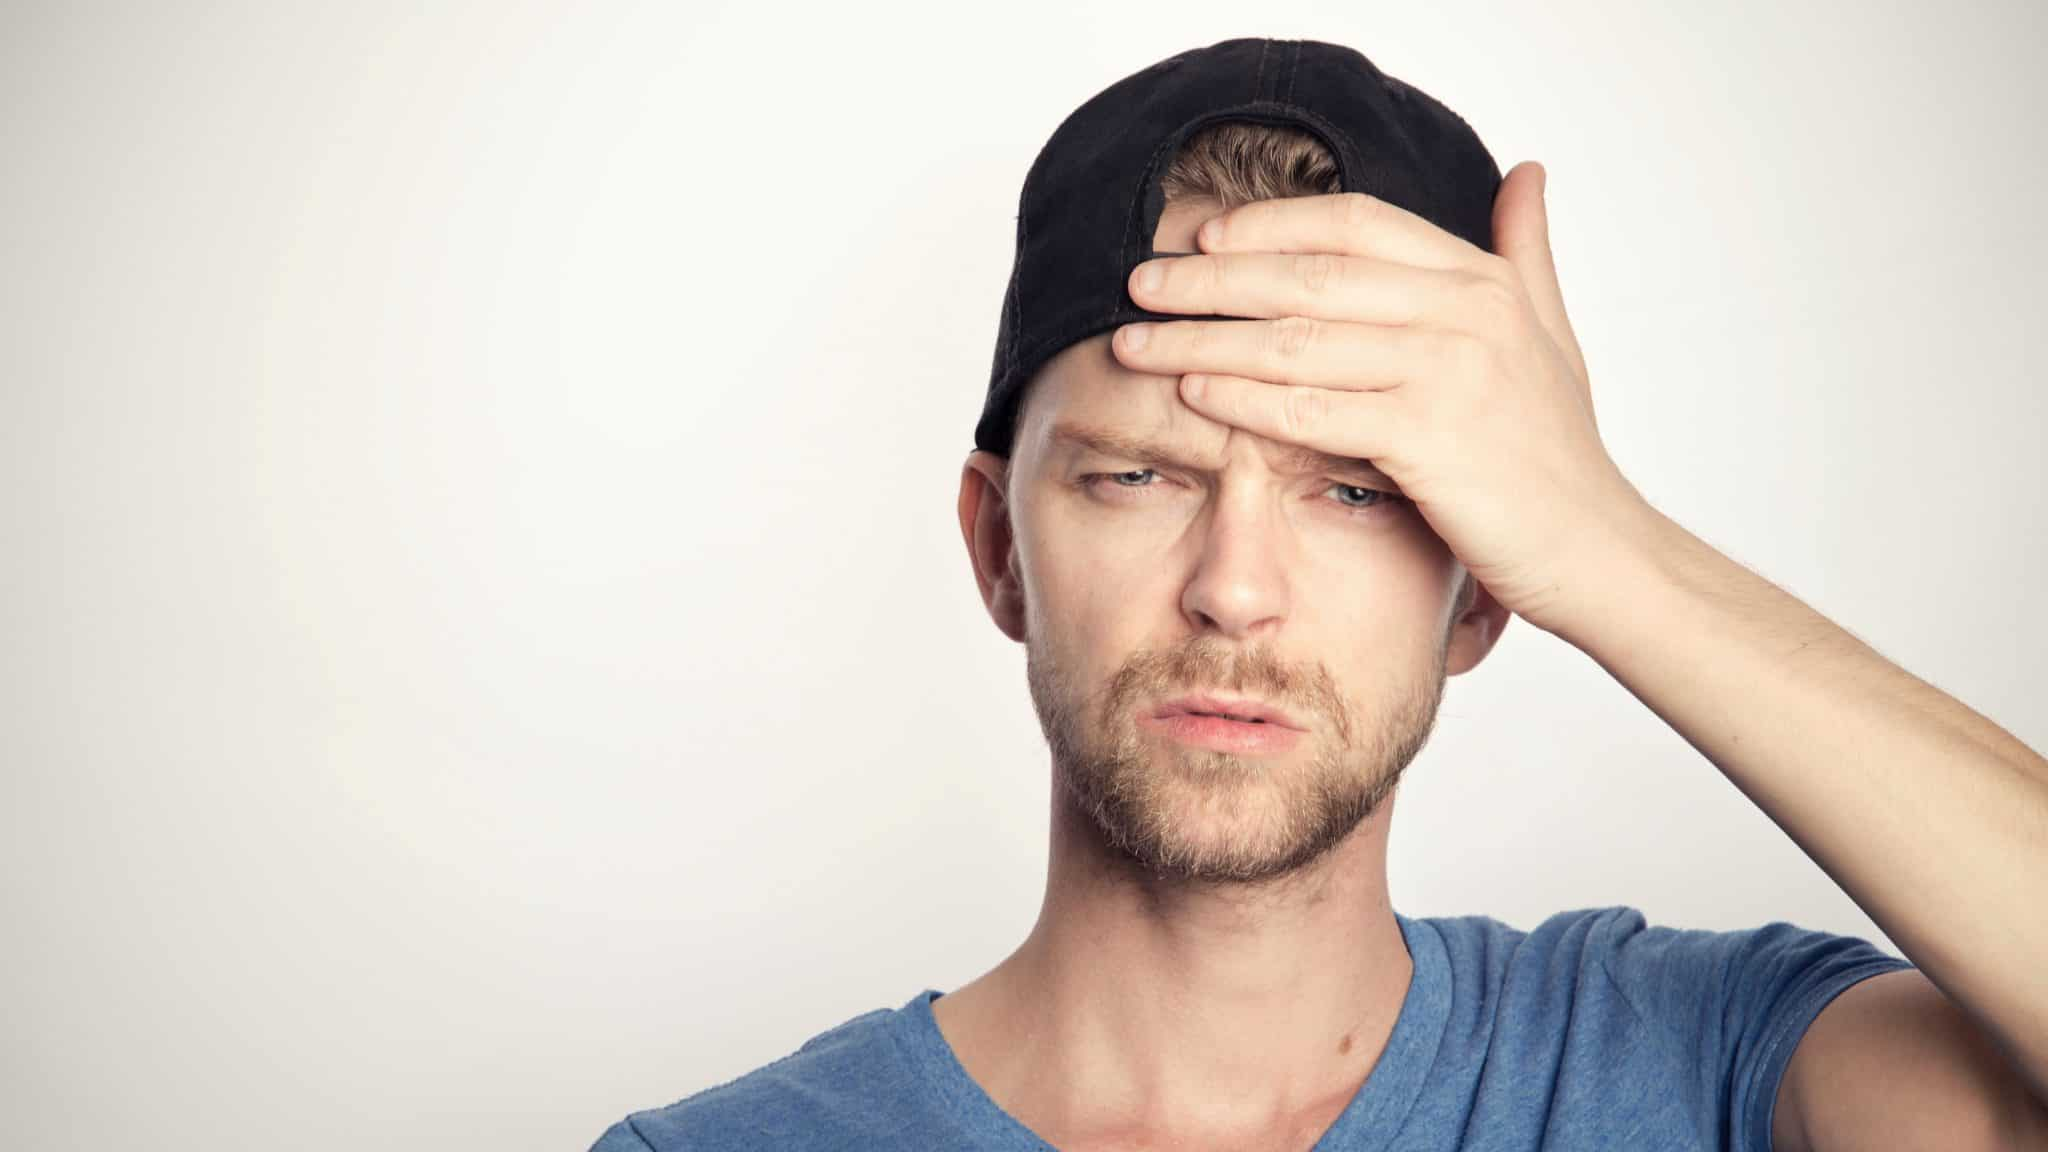 man wearing a backwards baseball cap looking confused with his hand to his head